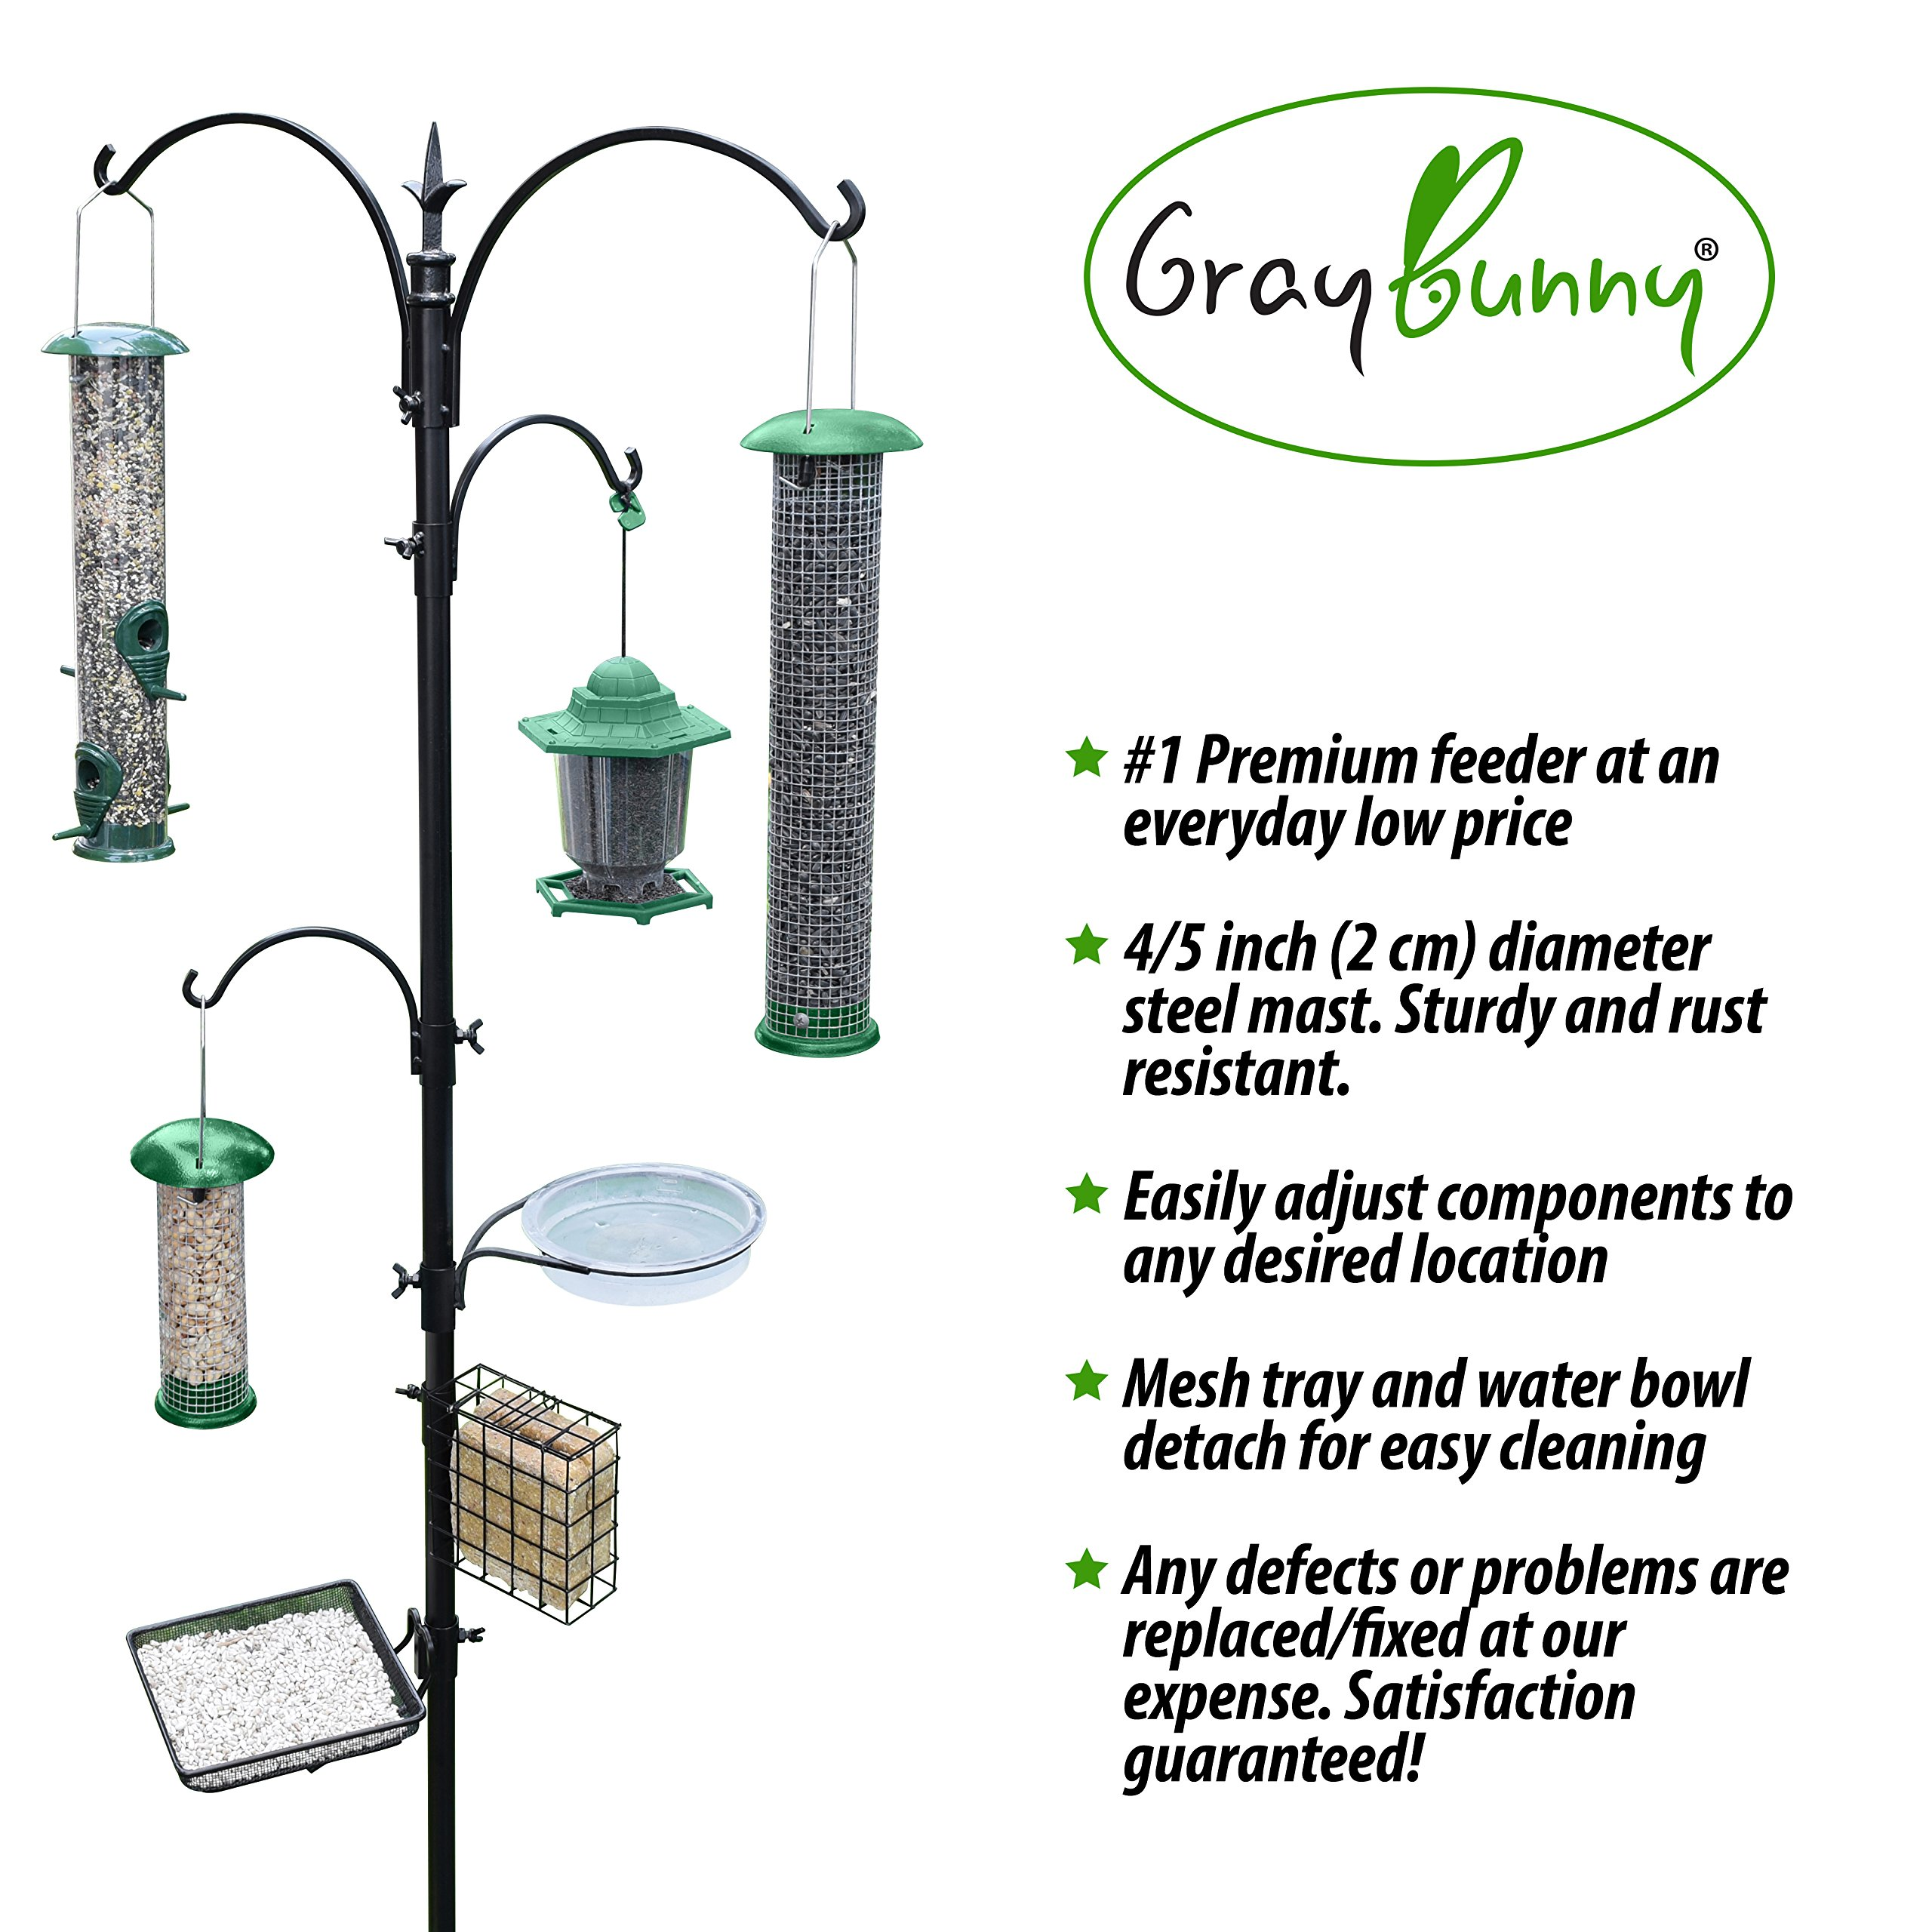 Gray Bunny GB-6844D Deluxe Premium Bird Feeding Station, 22'' Wide x 91'' Tall (82 inch above ground) Black, Multi Feeder Hanging Kit & Bird Bath For Attracting Wild Birds, Birdfeeder & Planter Hanger by Gray Bunny (Image #3)